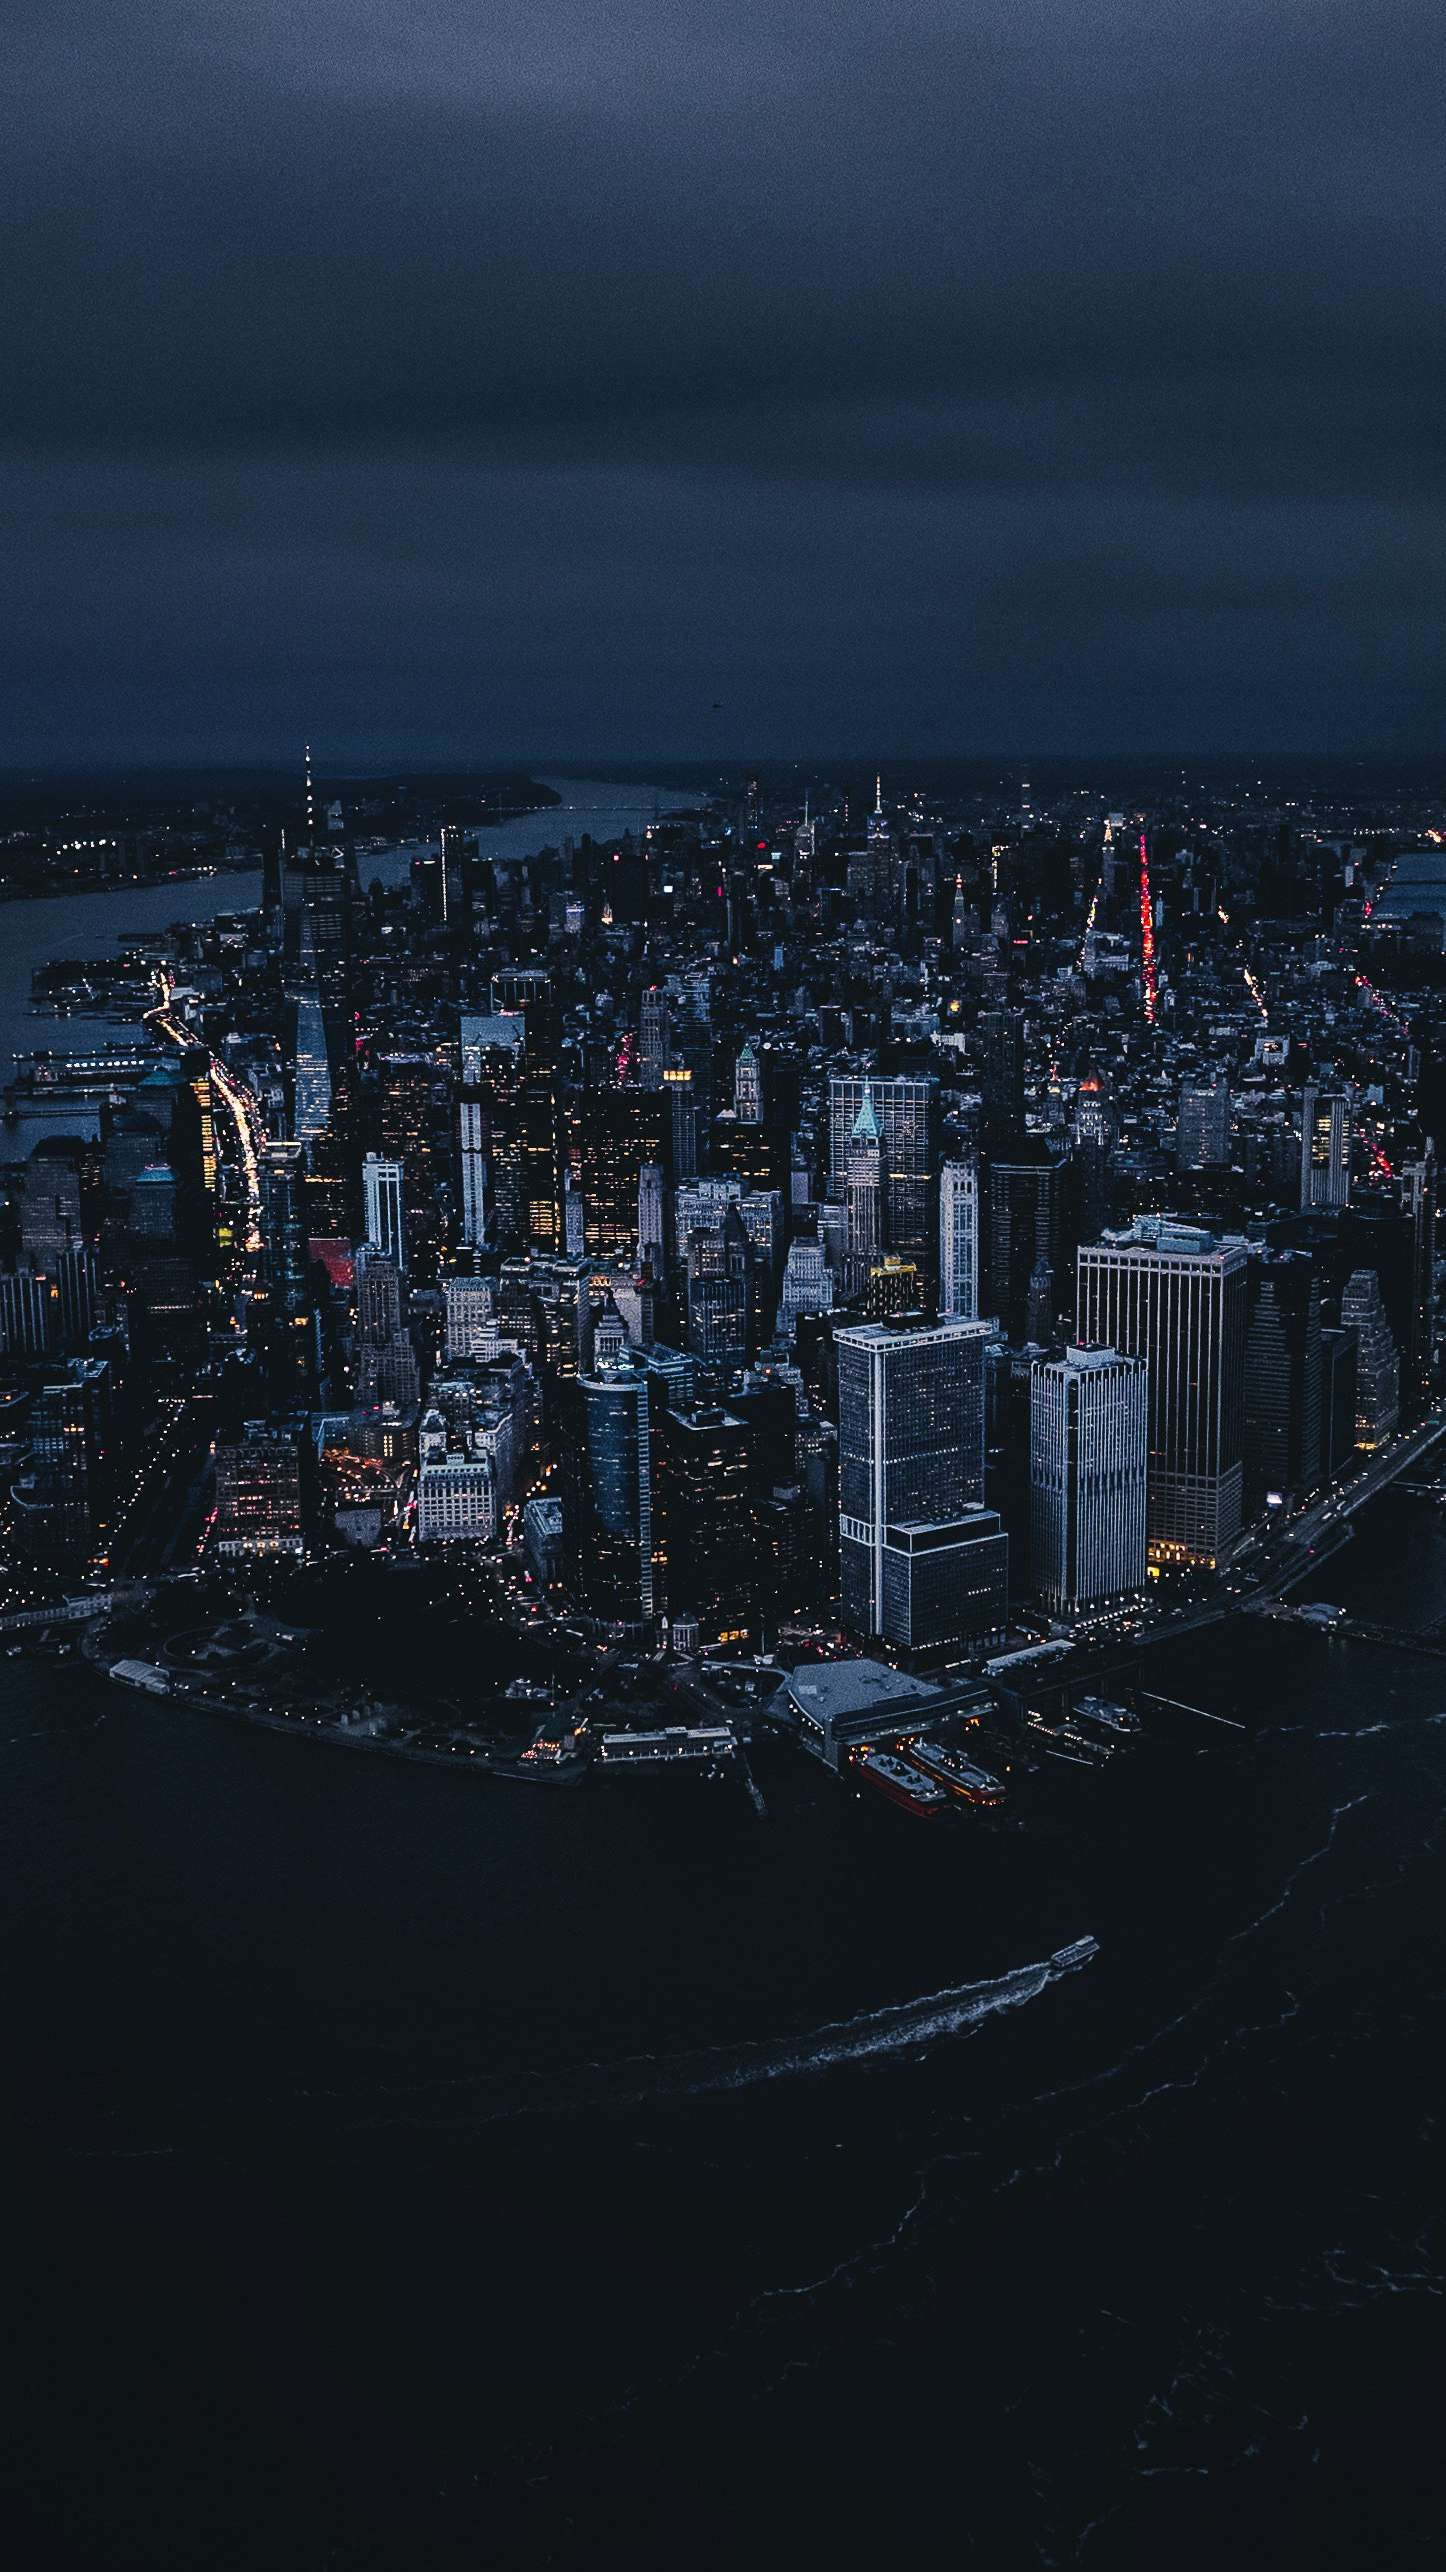 New York Night Wallpaper City wallpaper, City aesthetic